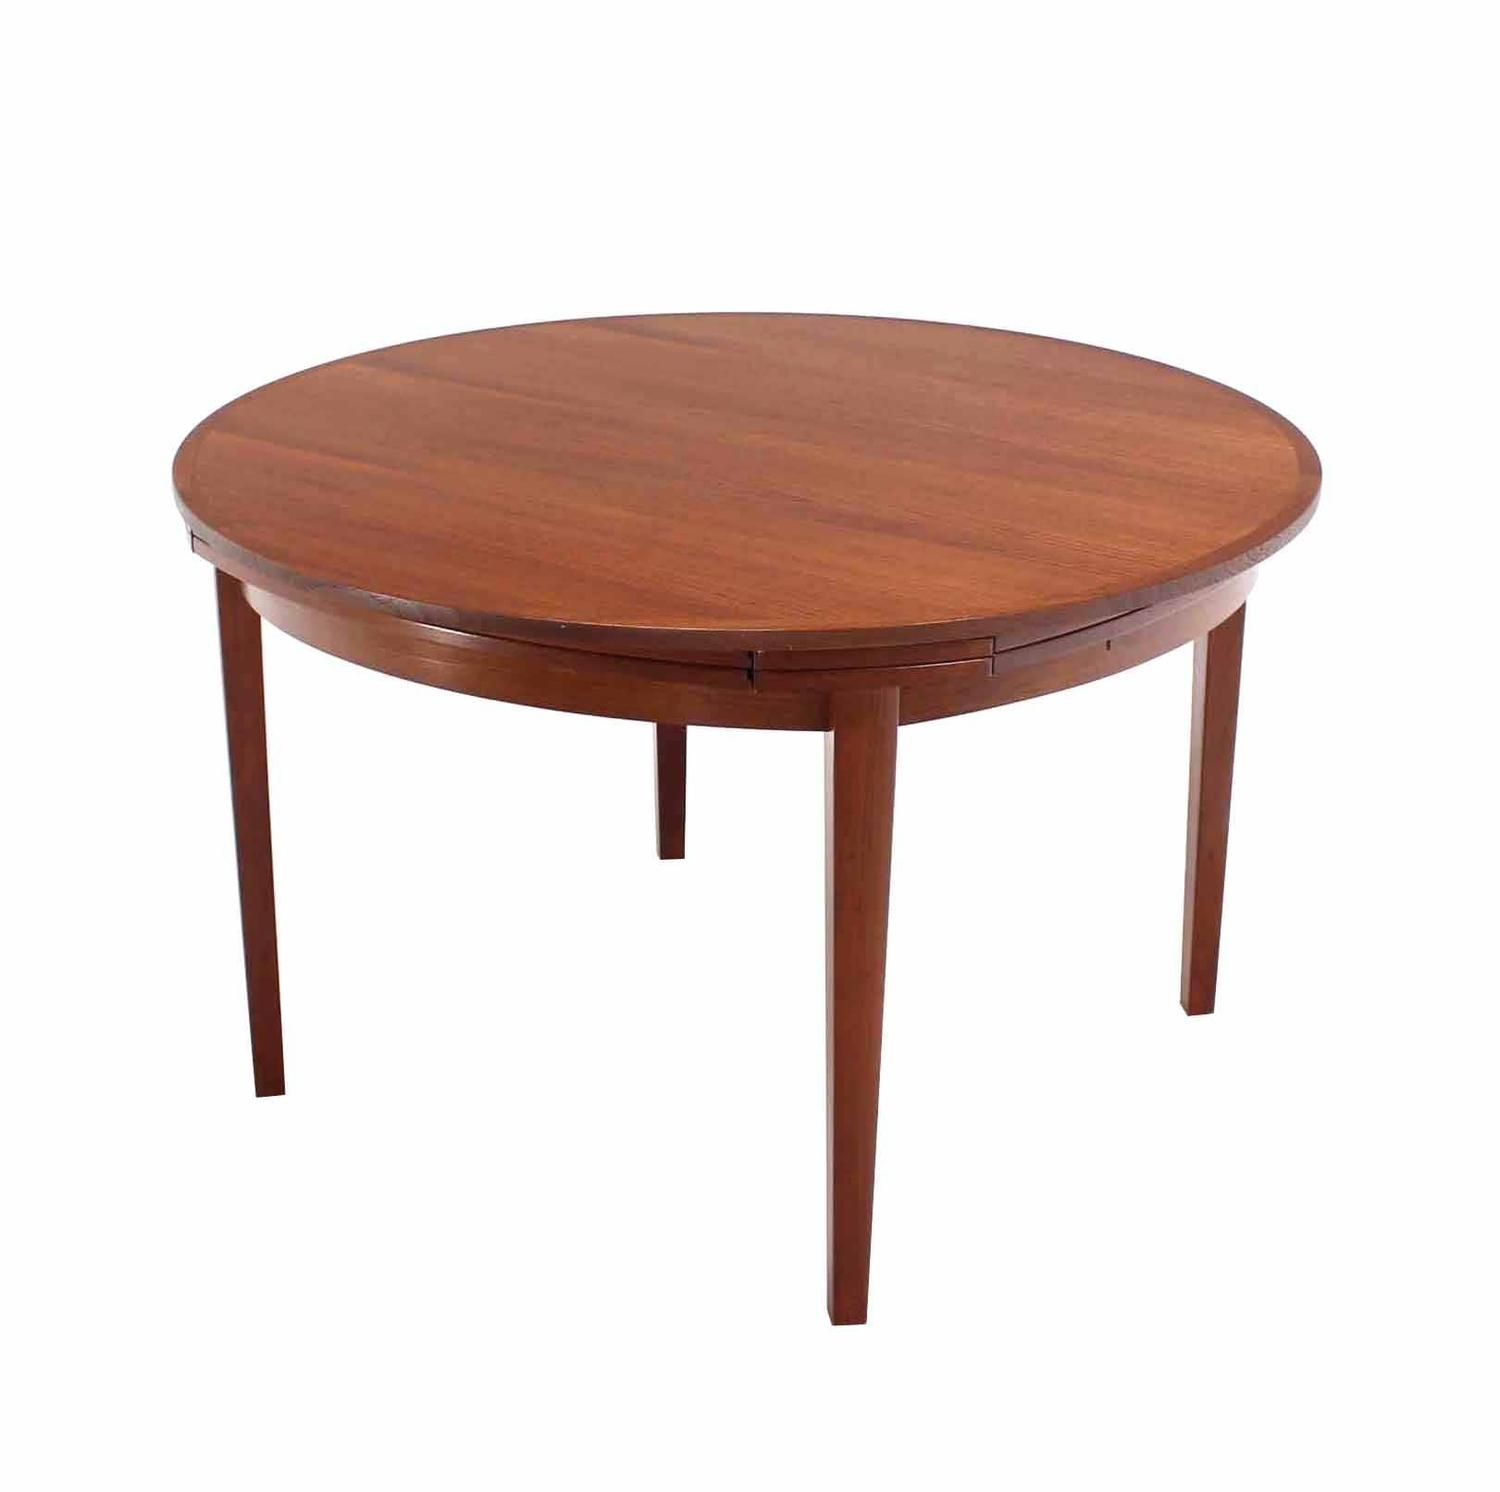 Rare Danish Modern Teak Round Expandable Top Dining Table Tisch